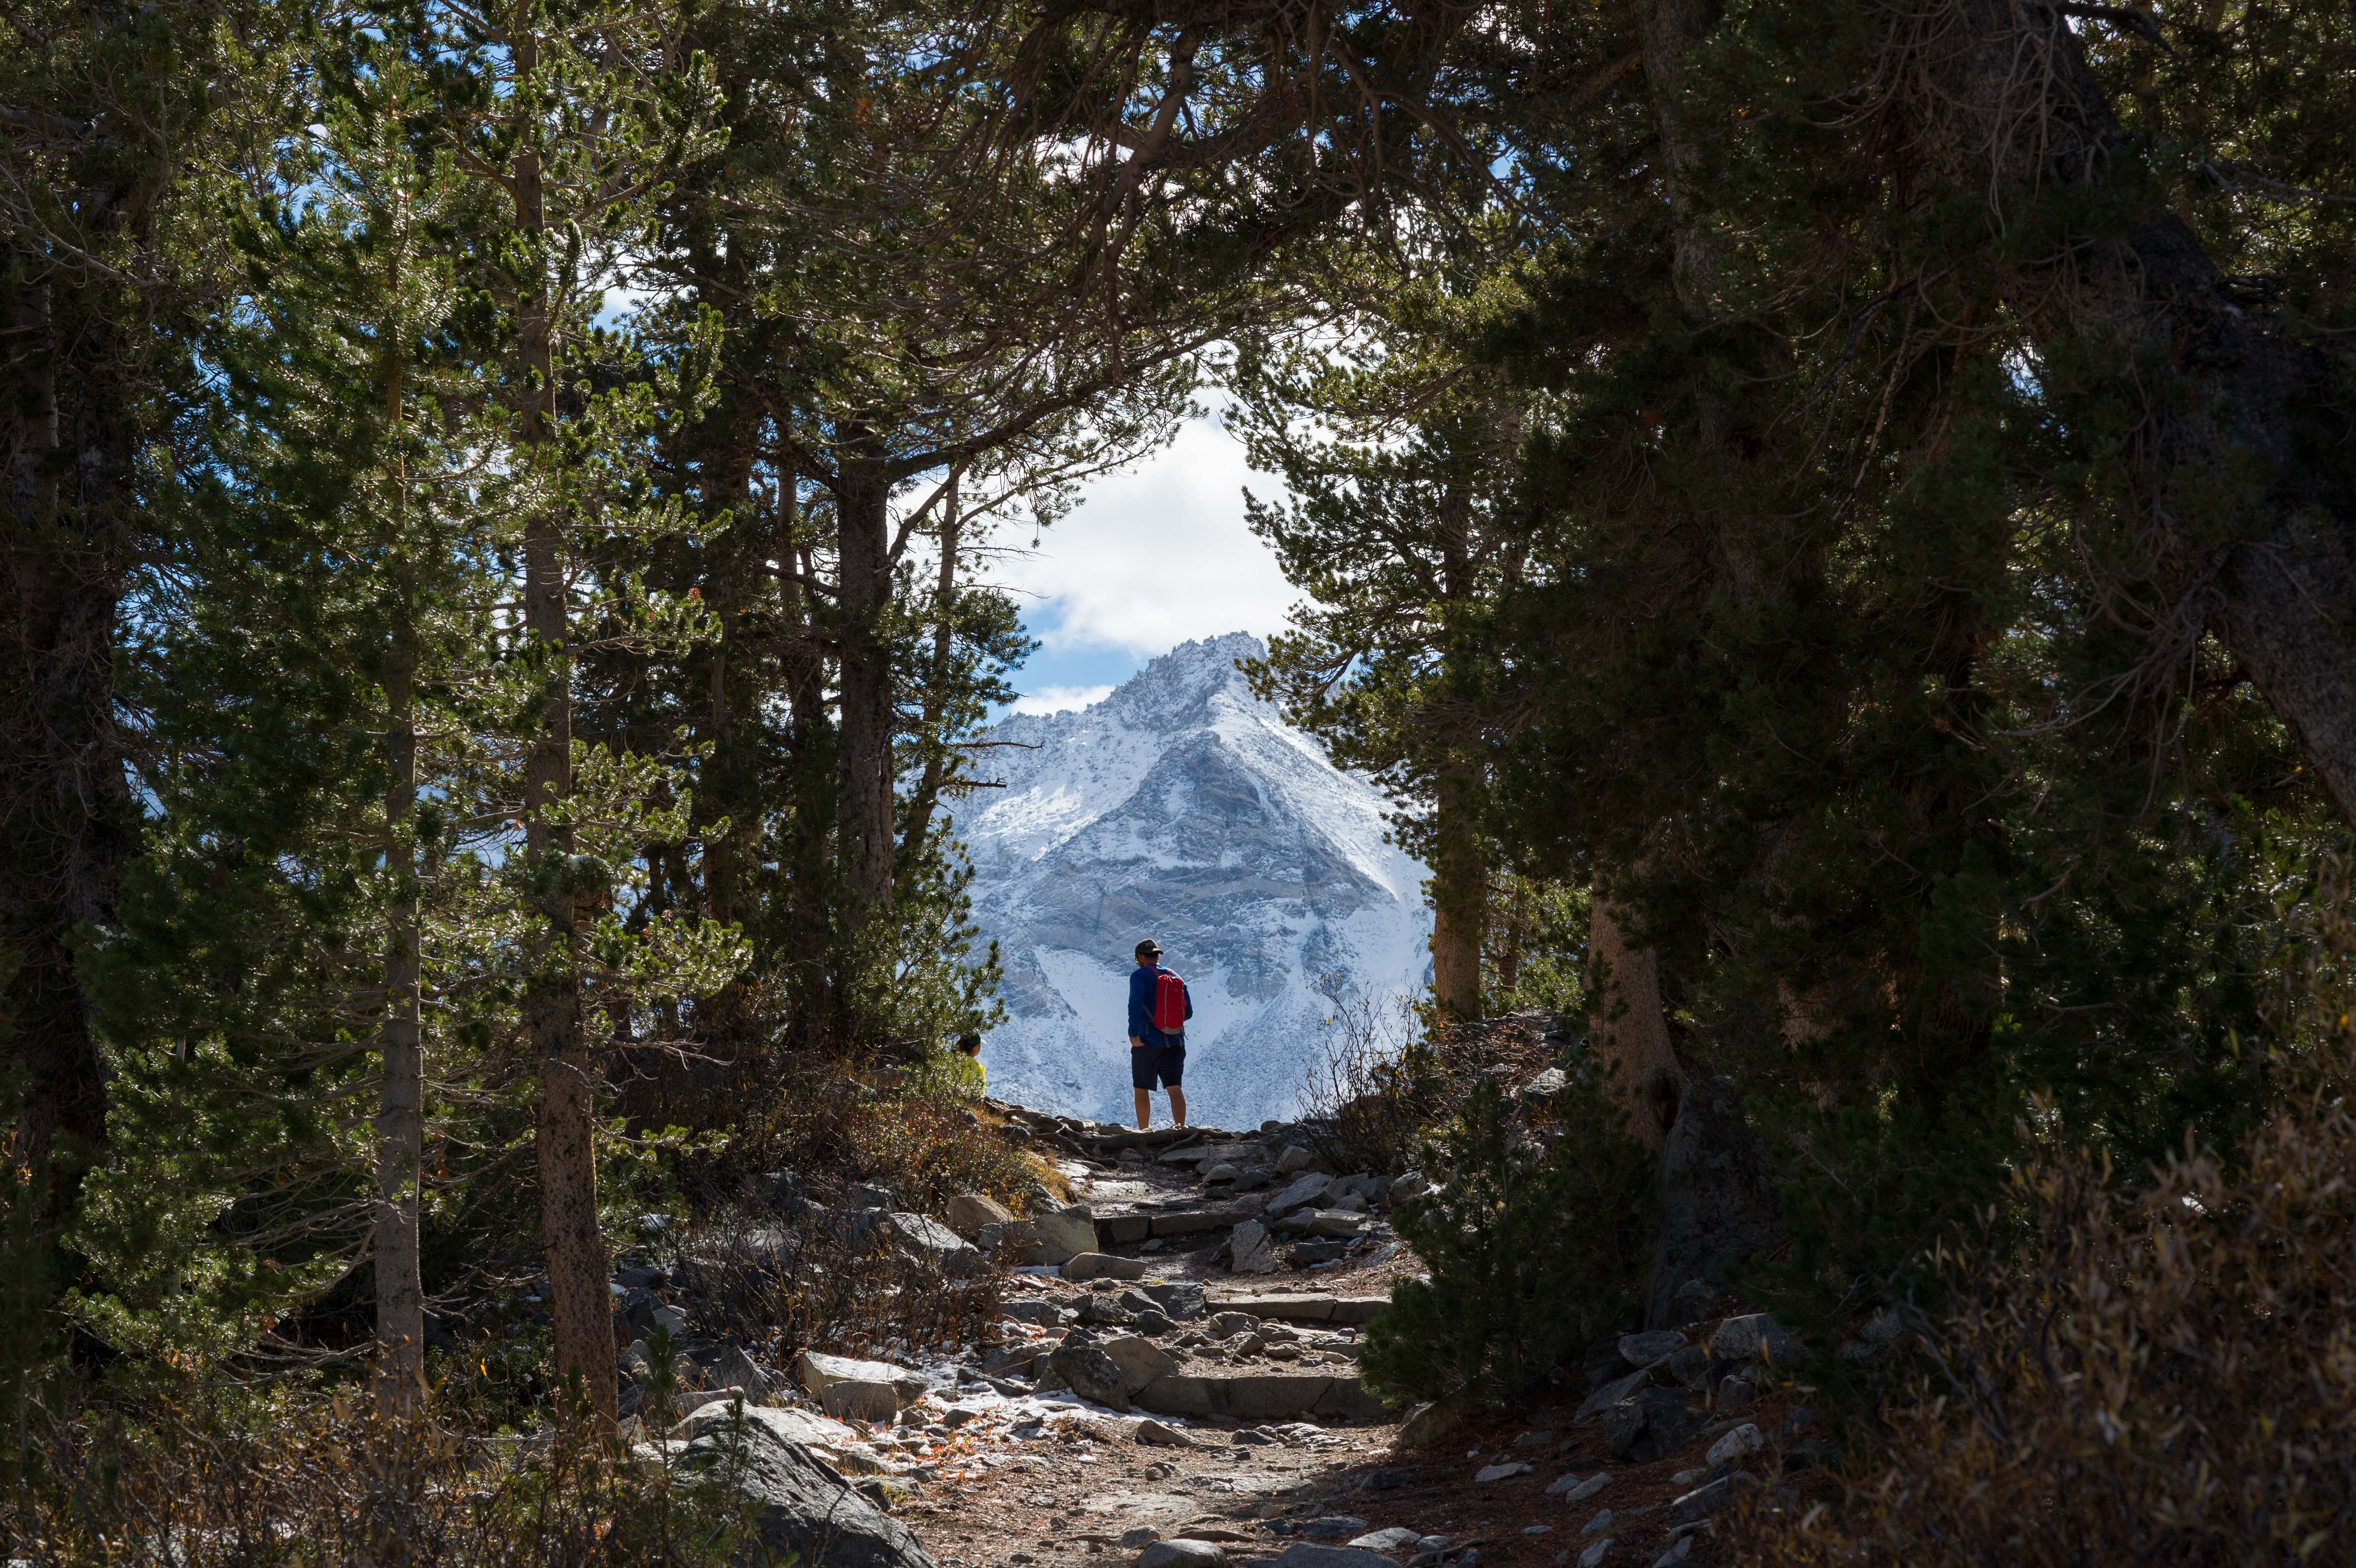 A hiker in the Little Lakes Valley in the Eastern Sierra. Photo by Steve Hymon.